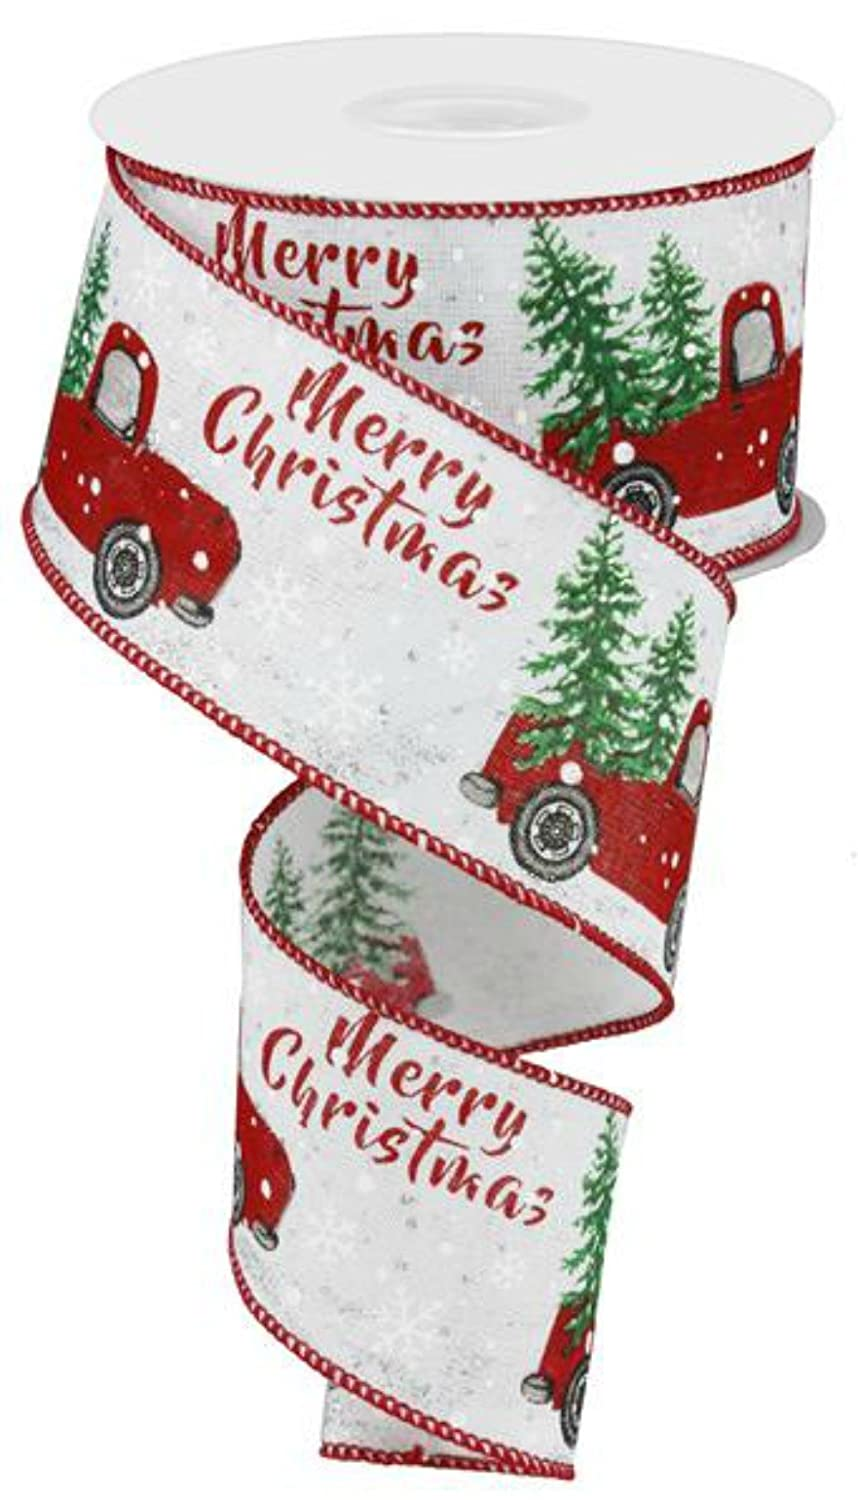 Christmas Expressions.2 5 Vintage Truck With Tree Merry Christmas Expressions Brand Wired Merry Christmas Red Truck Ribbon Rx419027